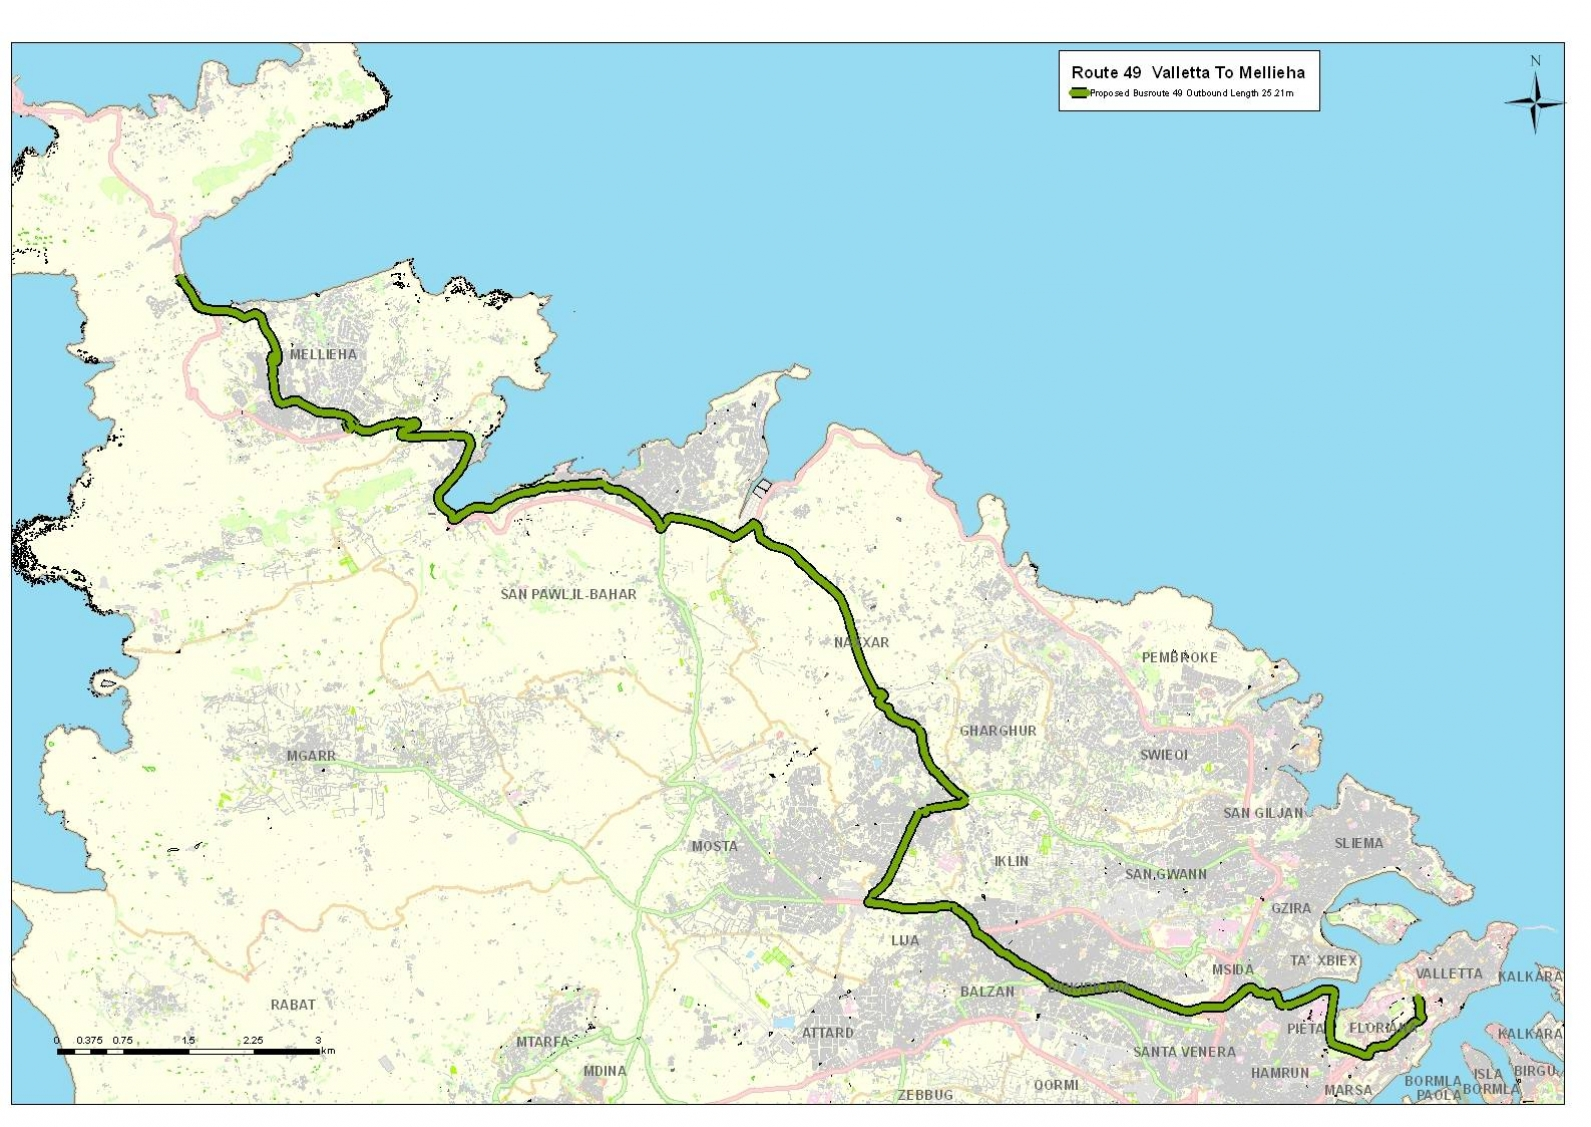 Land-current-network-routes-and-schedules-Cirkewwa-mellieha-sliema-4